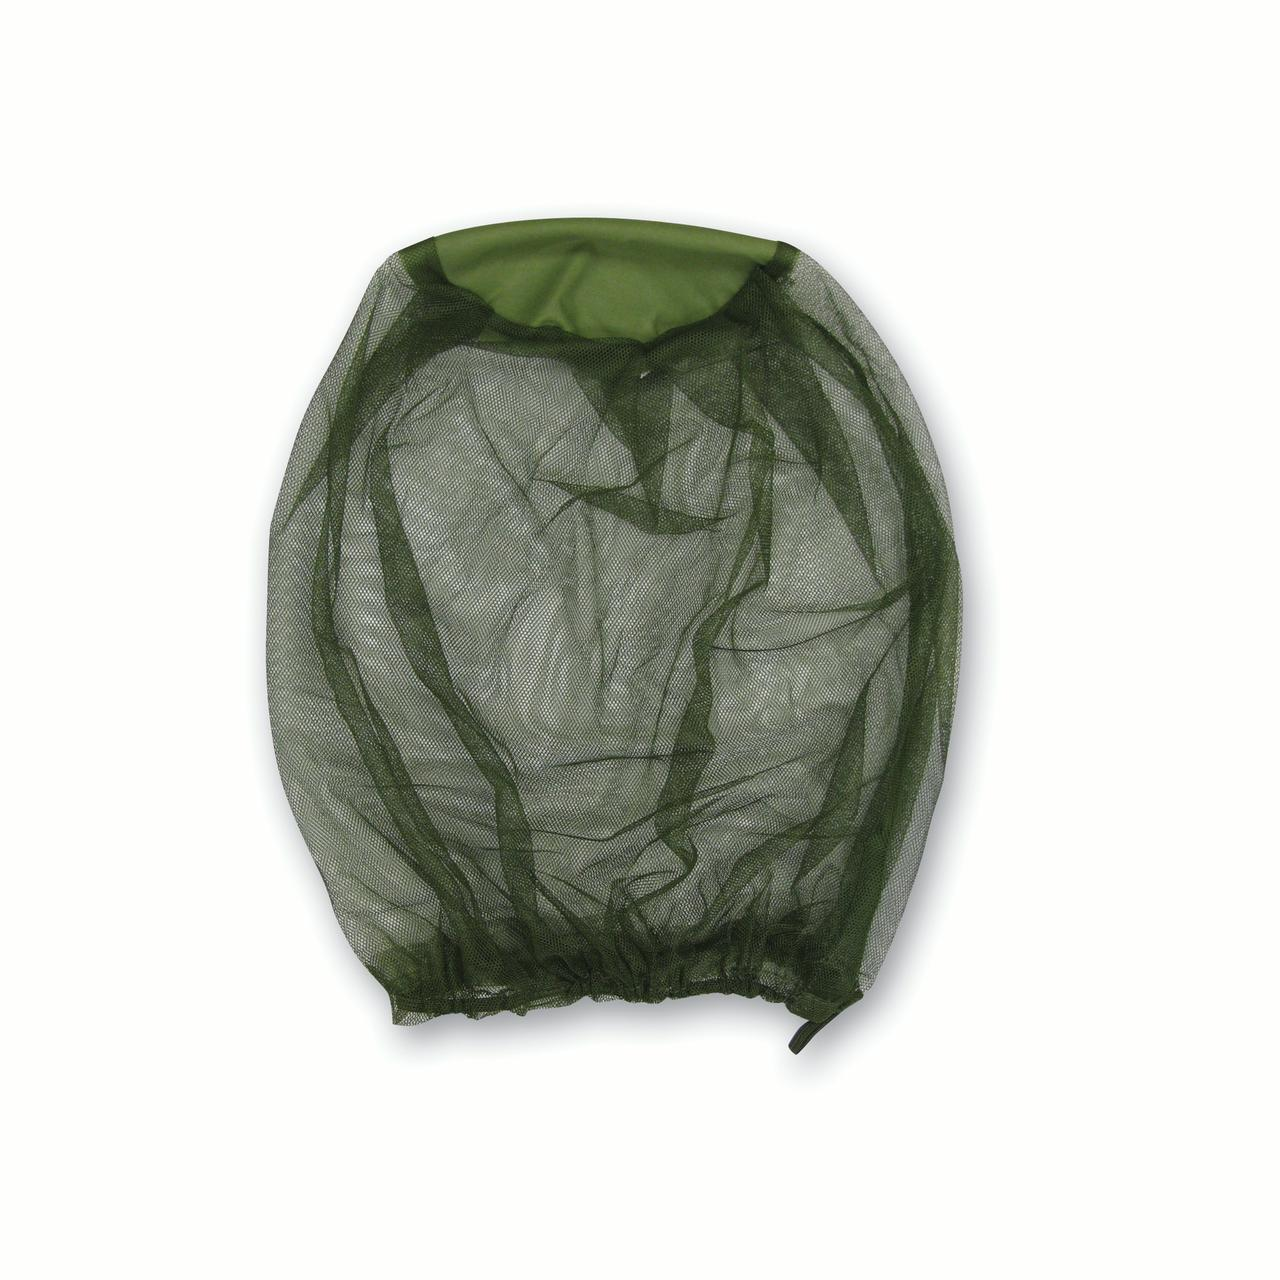 Stansport Mosquito Head Net by Stansport